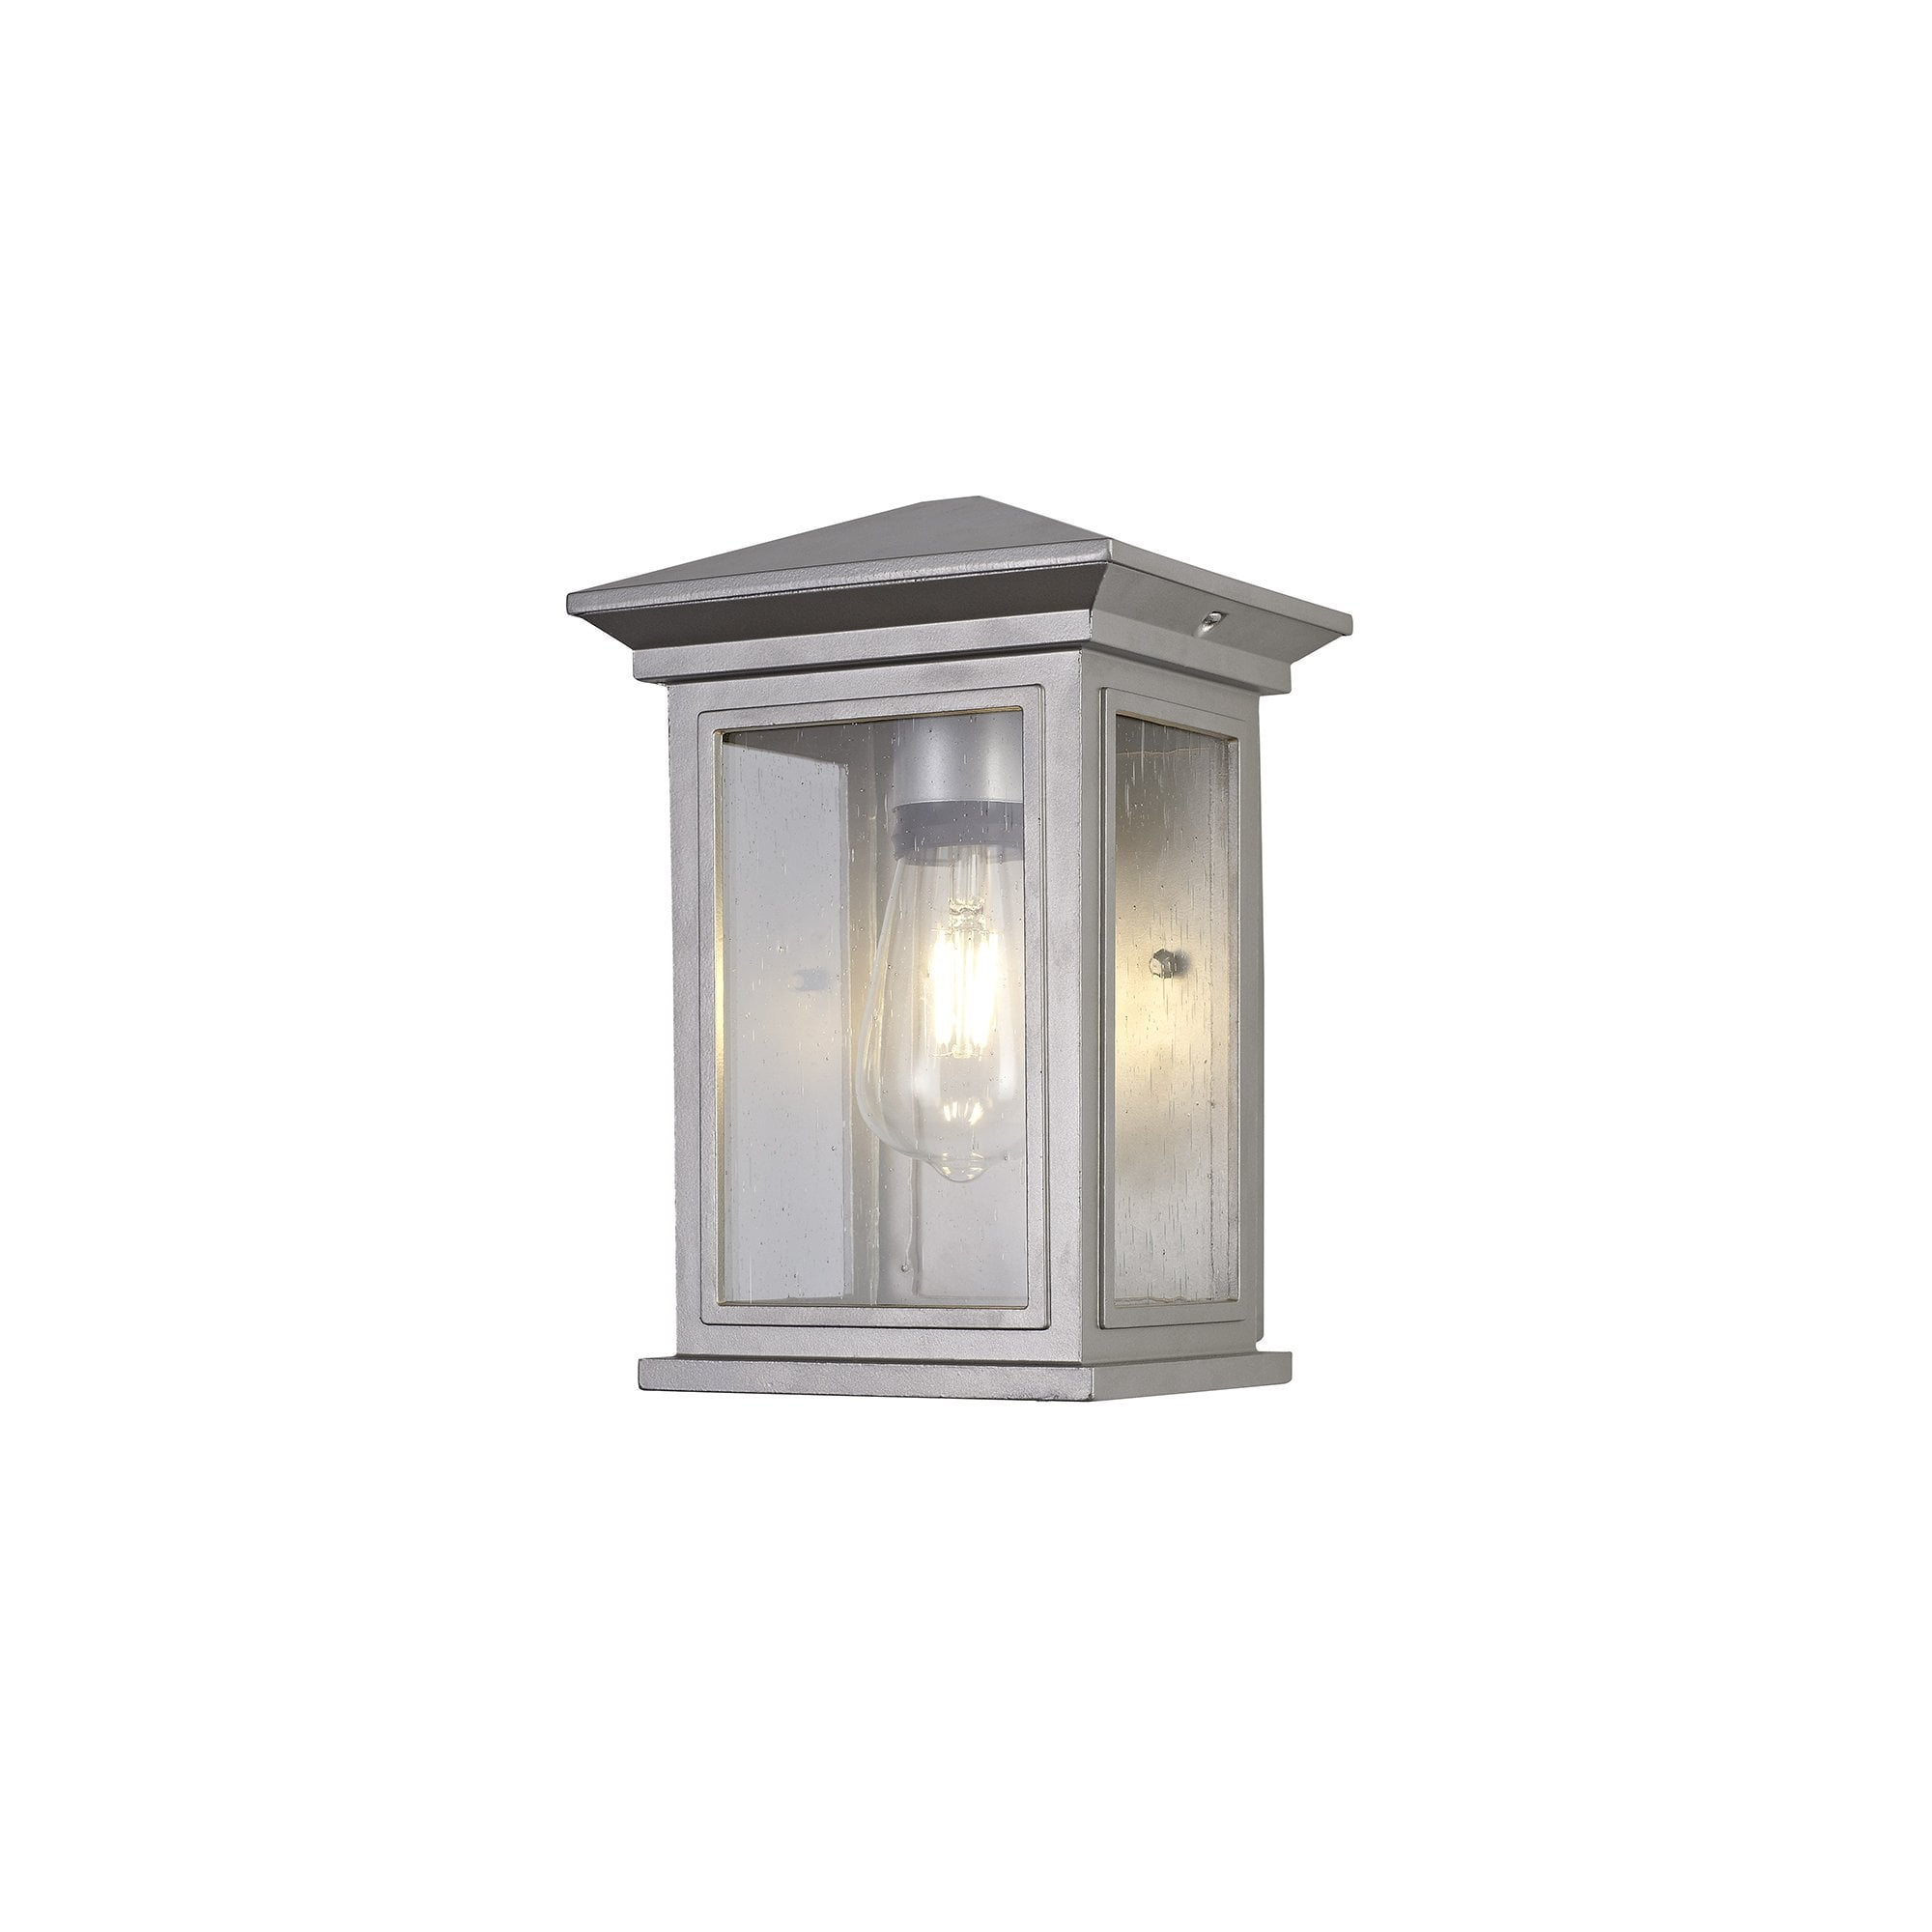 Lg75609 Kemel Outdoor Flush Wall Lamp 1 Light Silver Grey Clear Seeded Glass